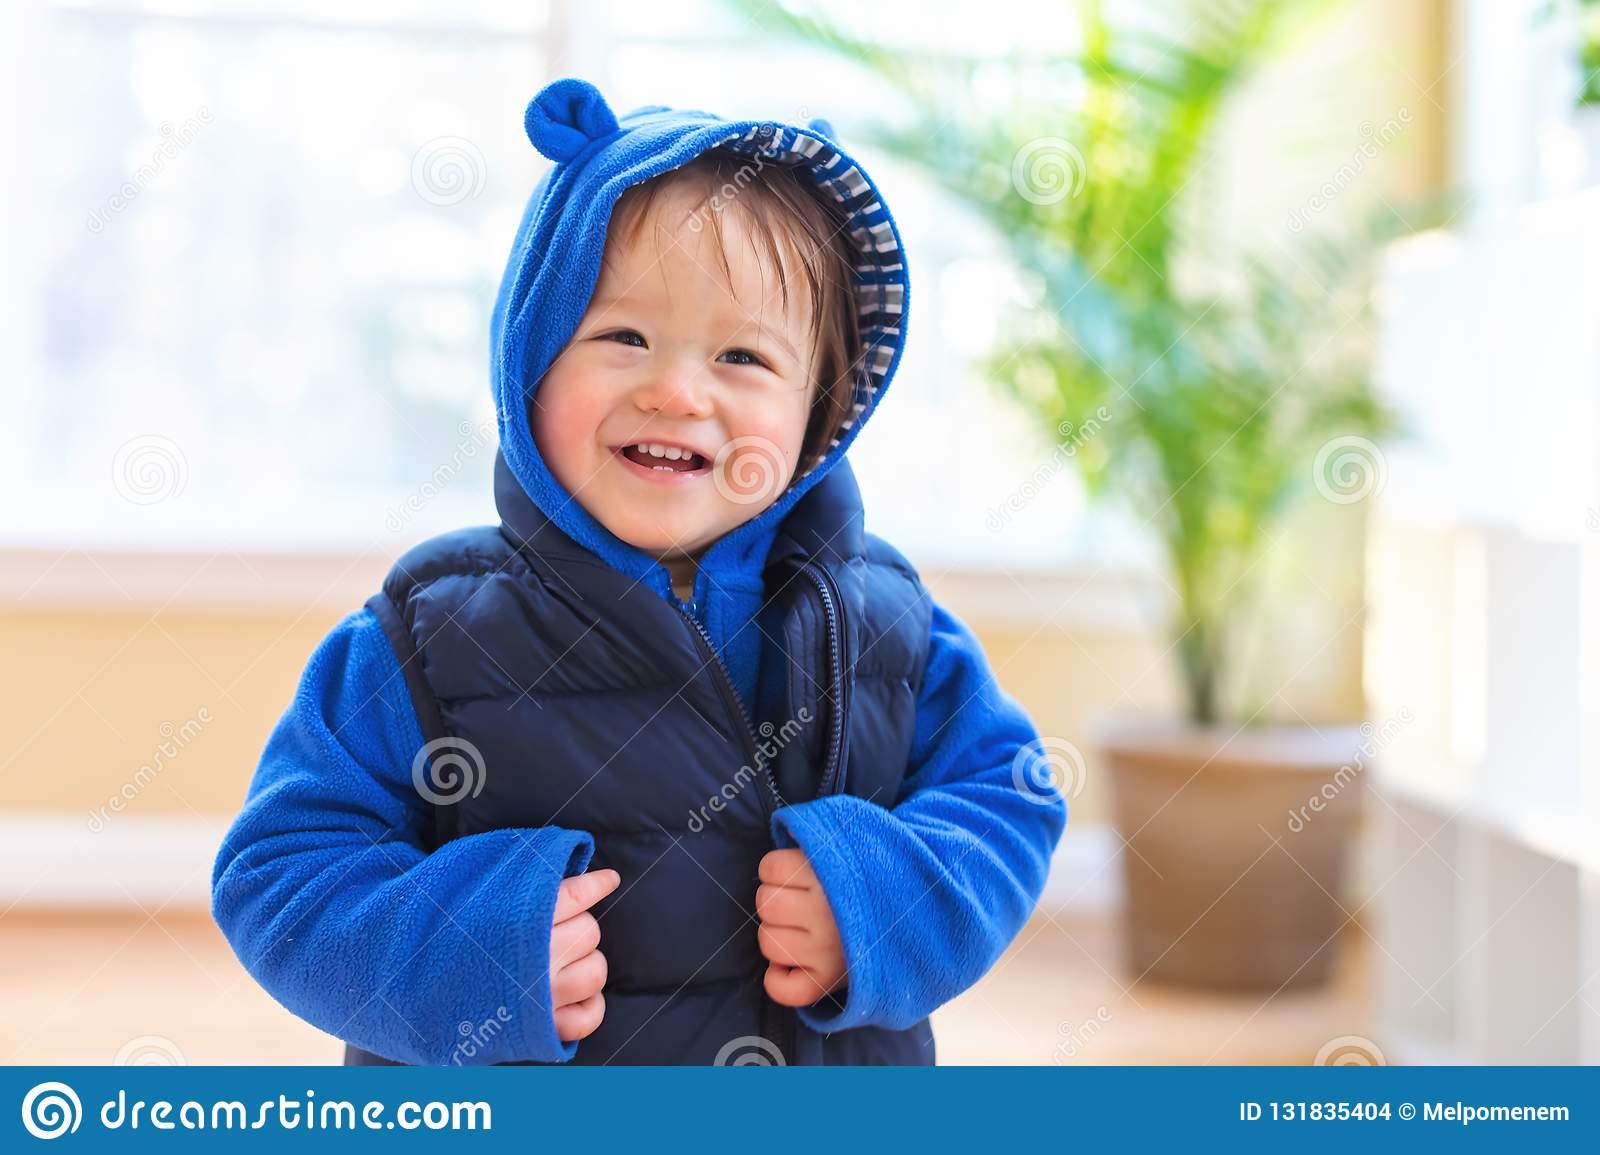 Happy toddler boy bundled up in winter clothes